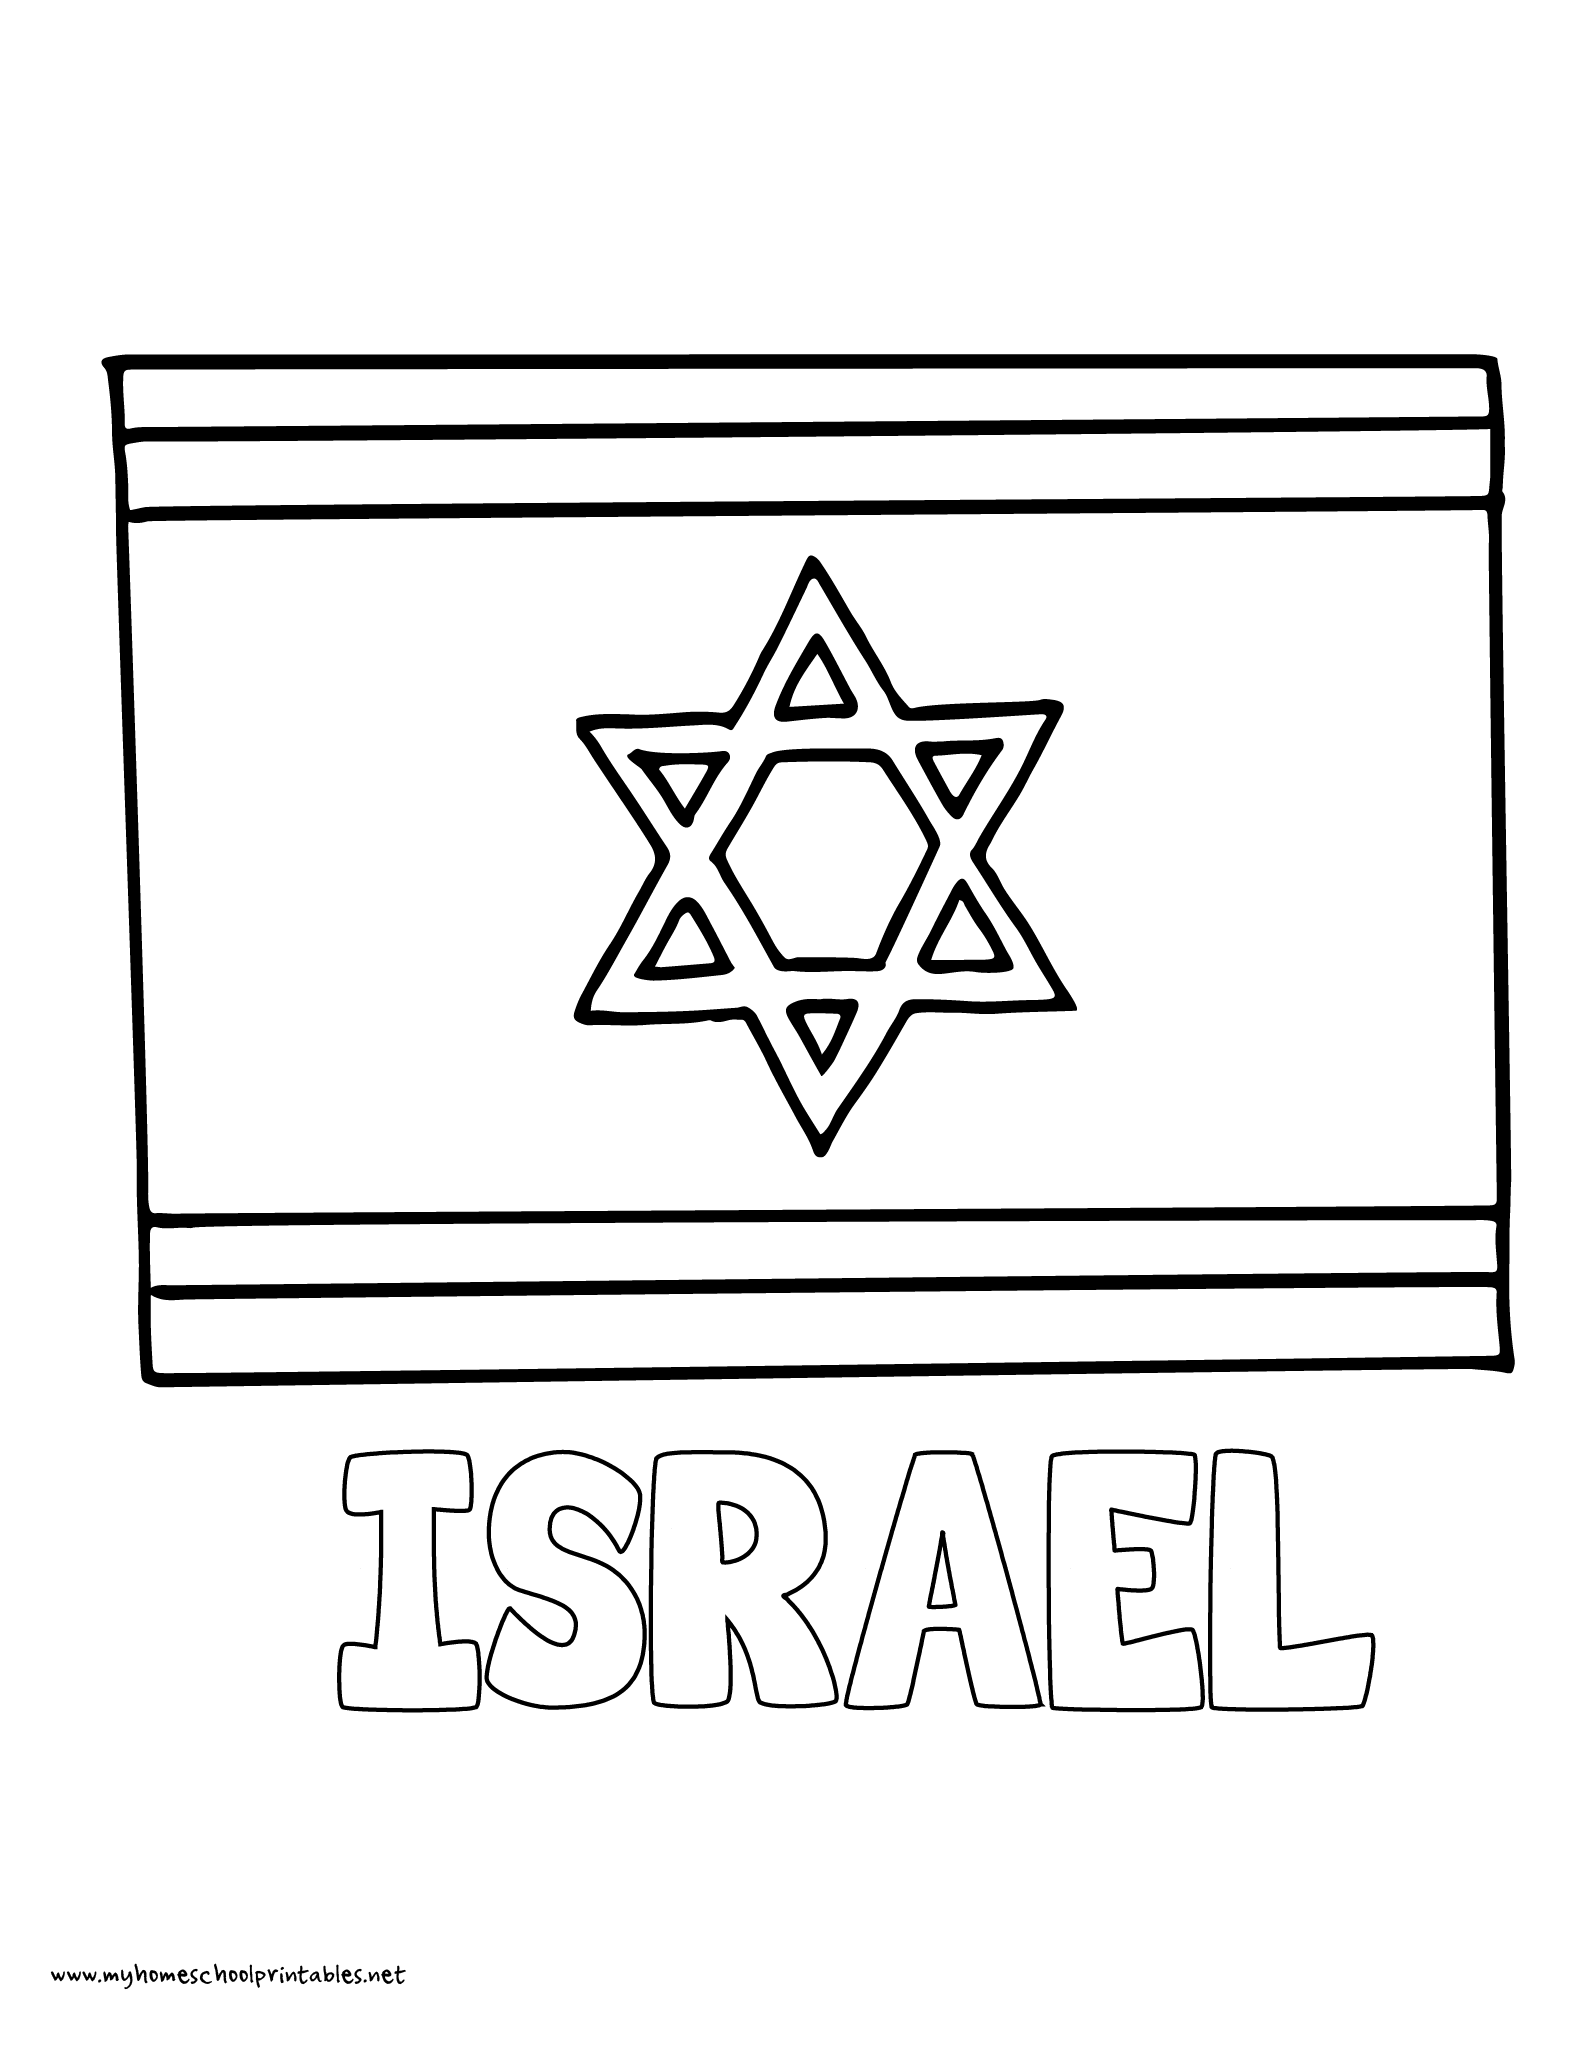 History Coloring Pages Volume 4 Flag coloring pages